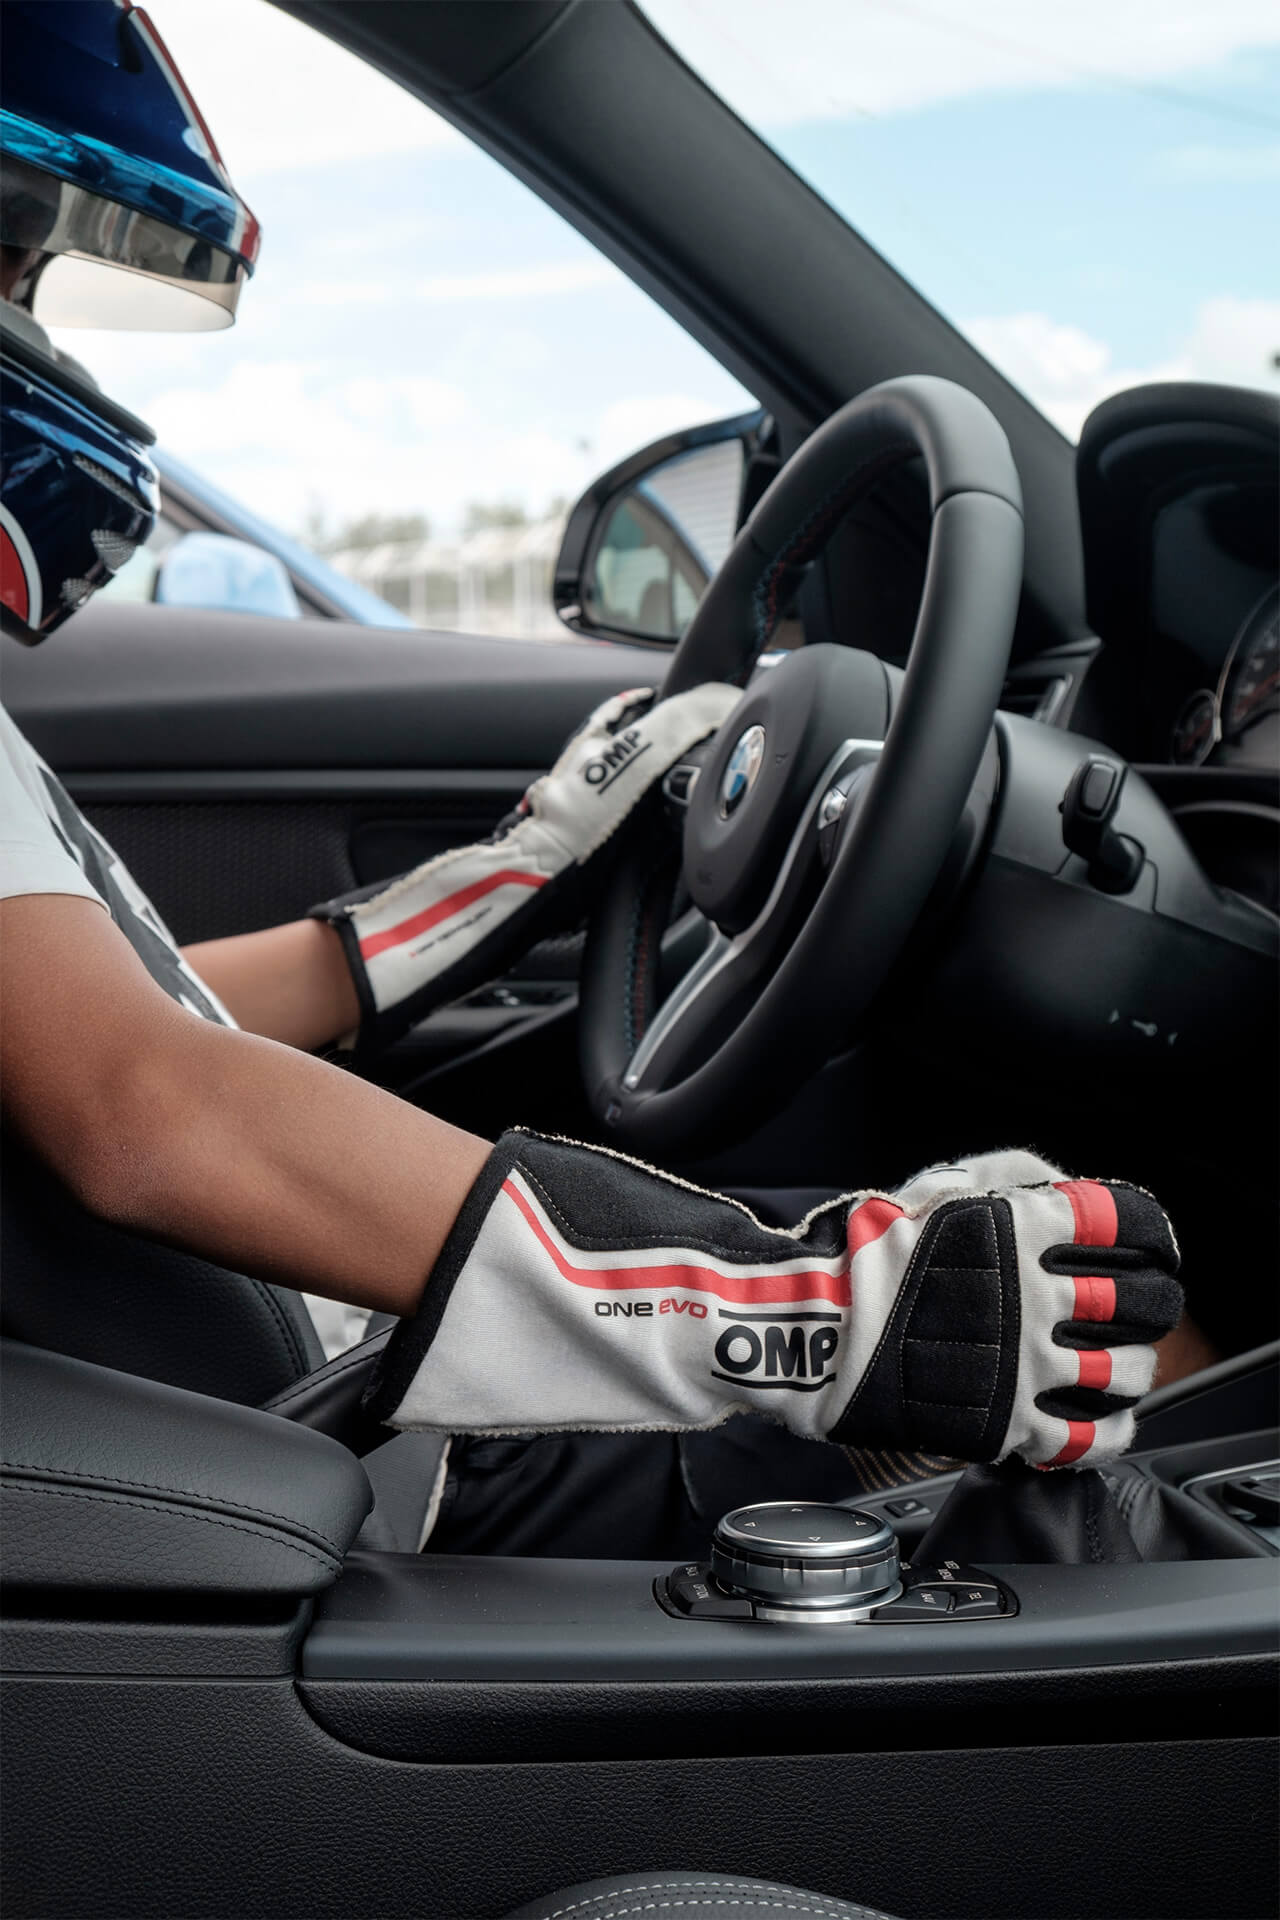 A driver with a helmet and gloves